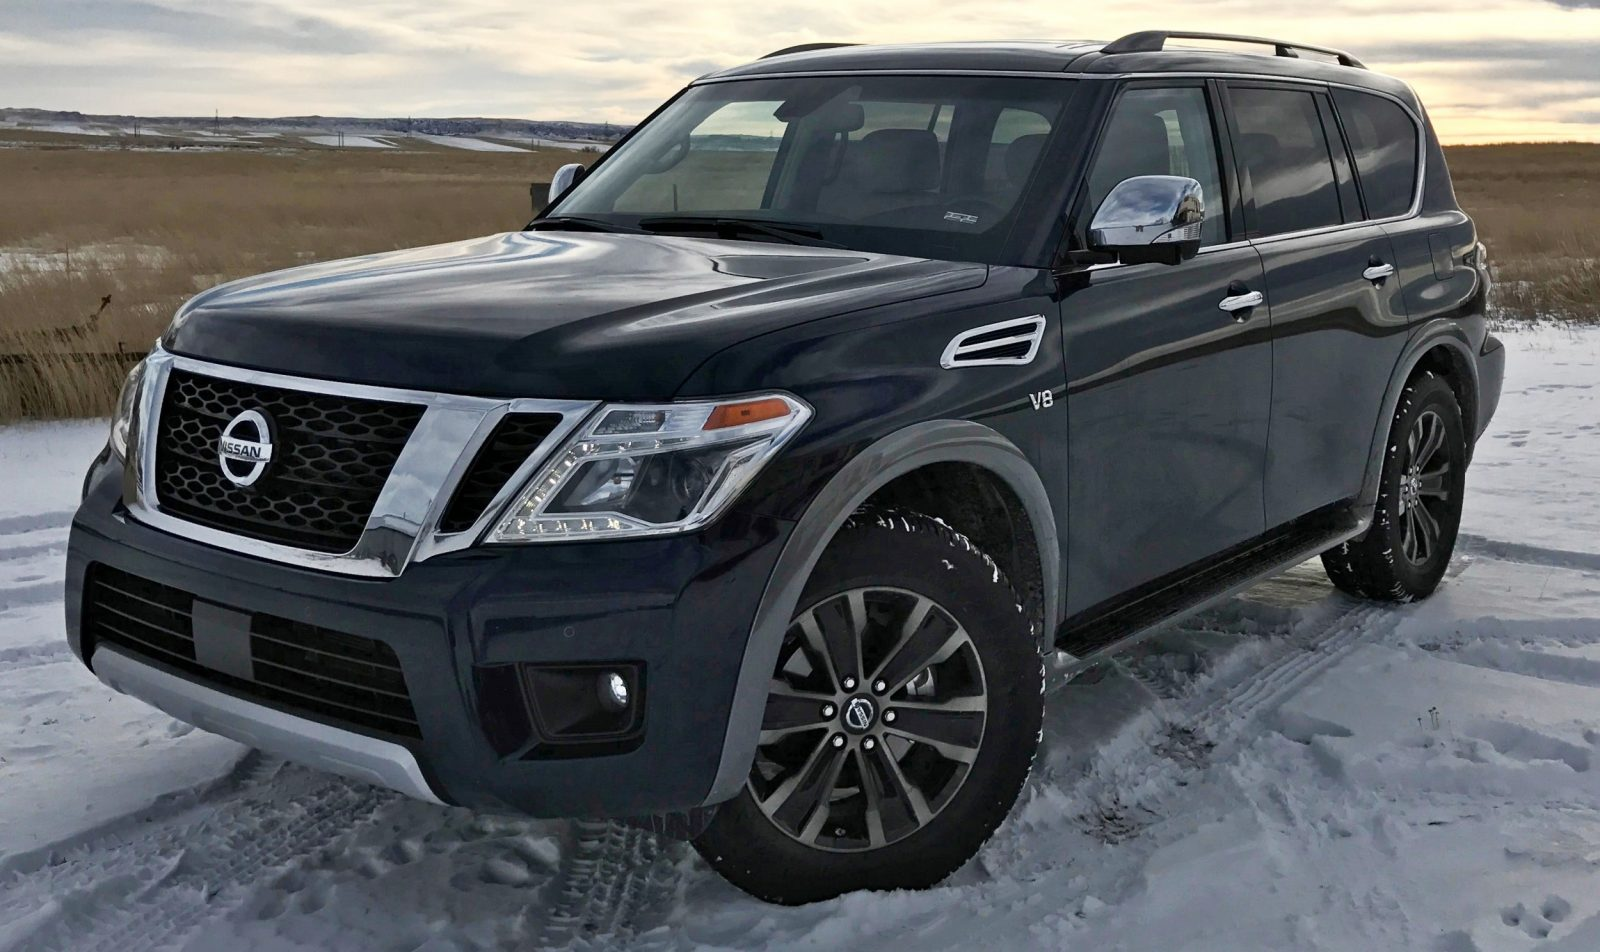 2017 nissan armada road test review by tim esterdahl 5. Black Bedroom Furniture Sets. Home Design Ideas